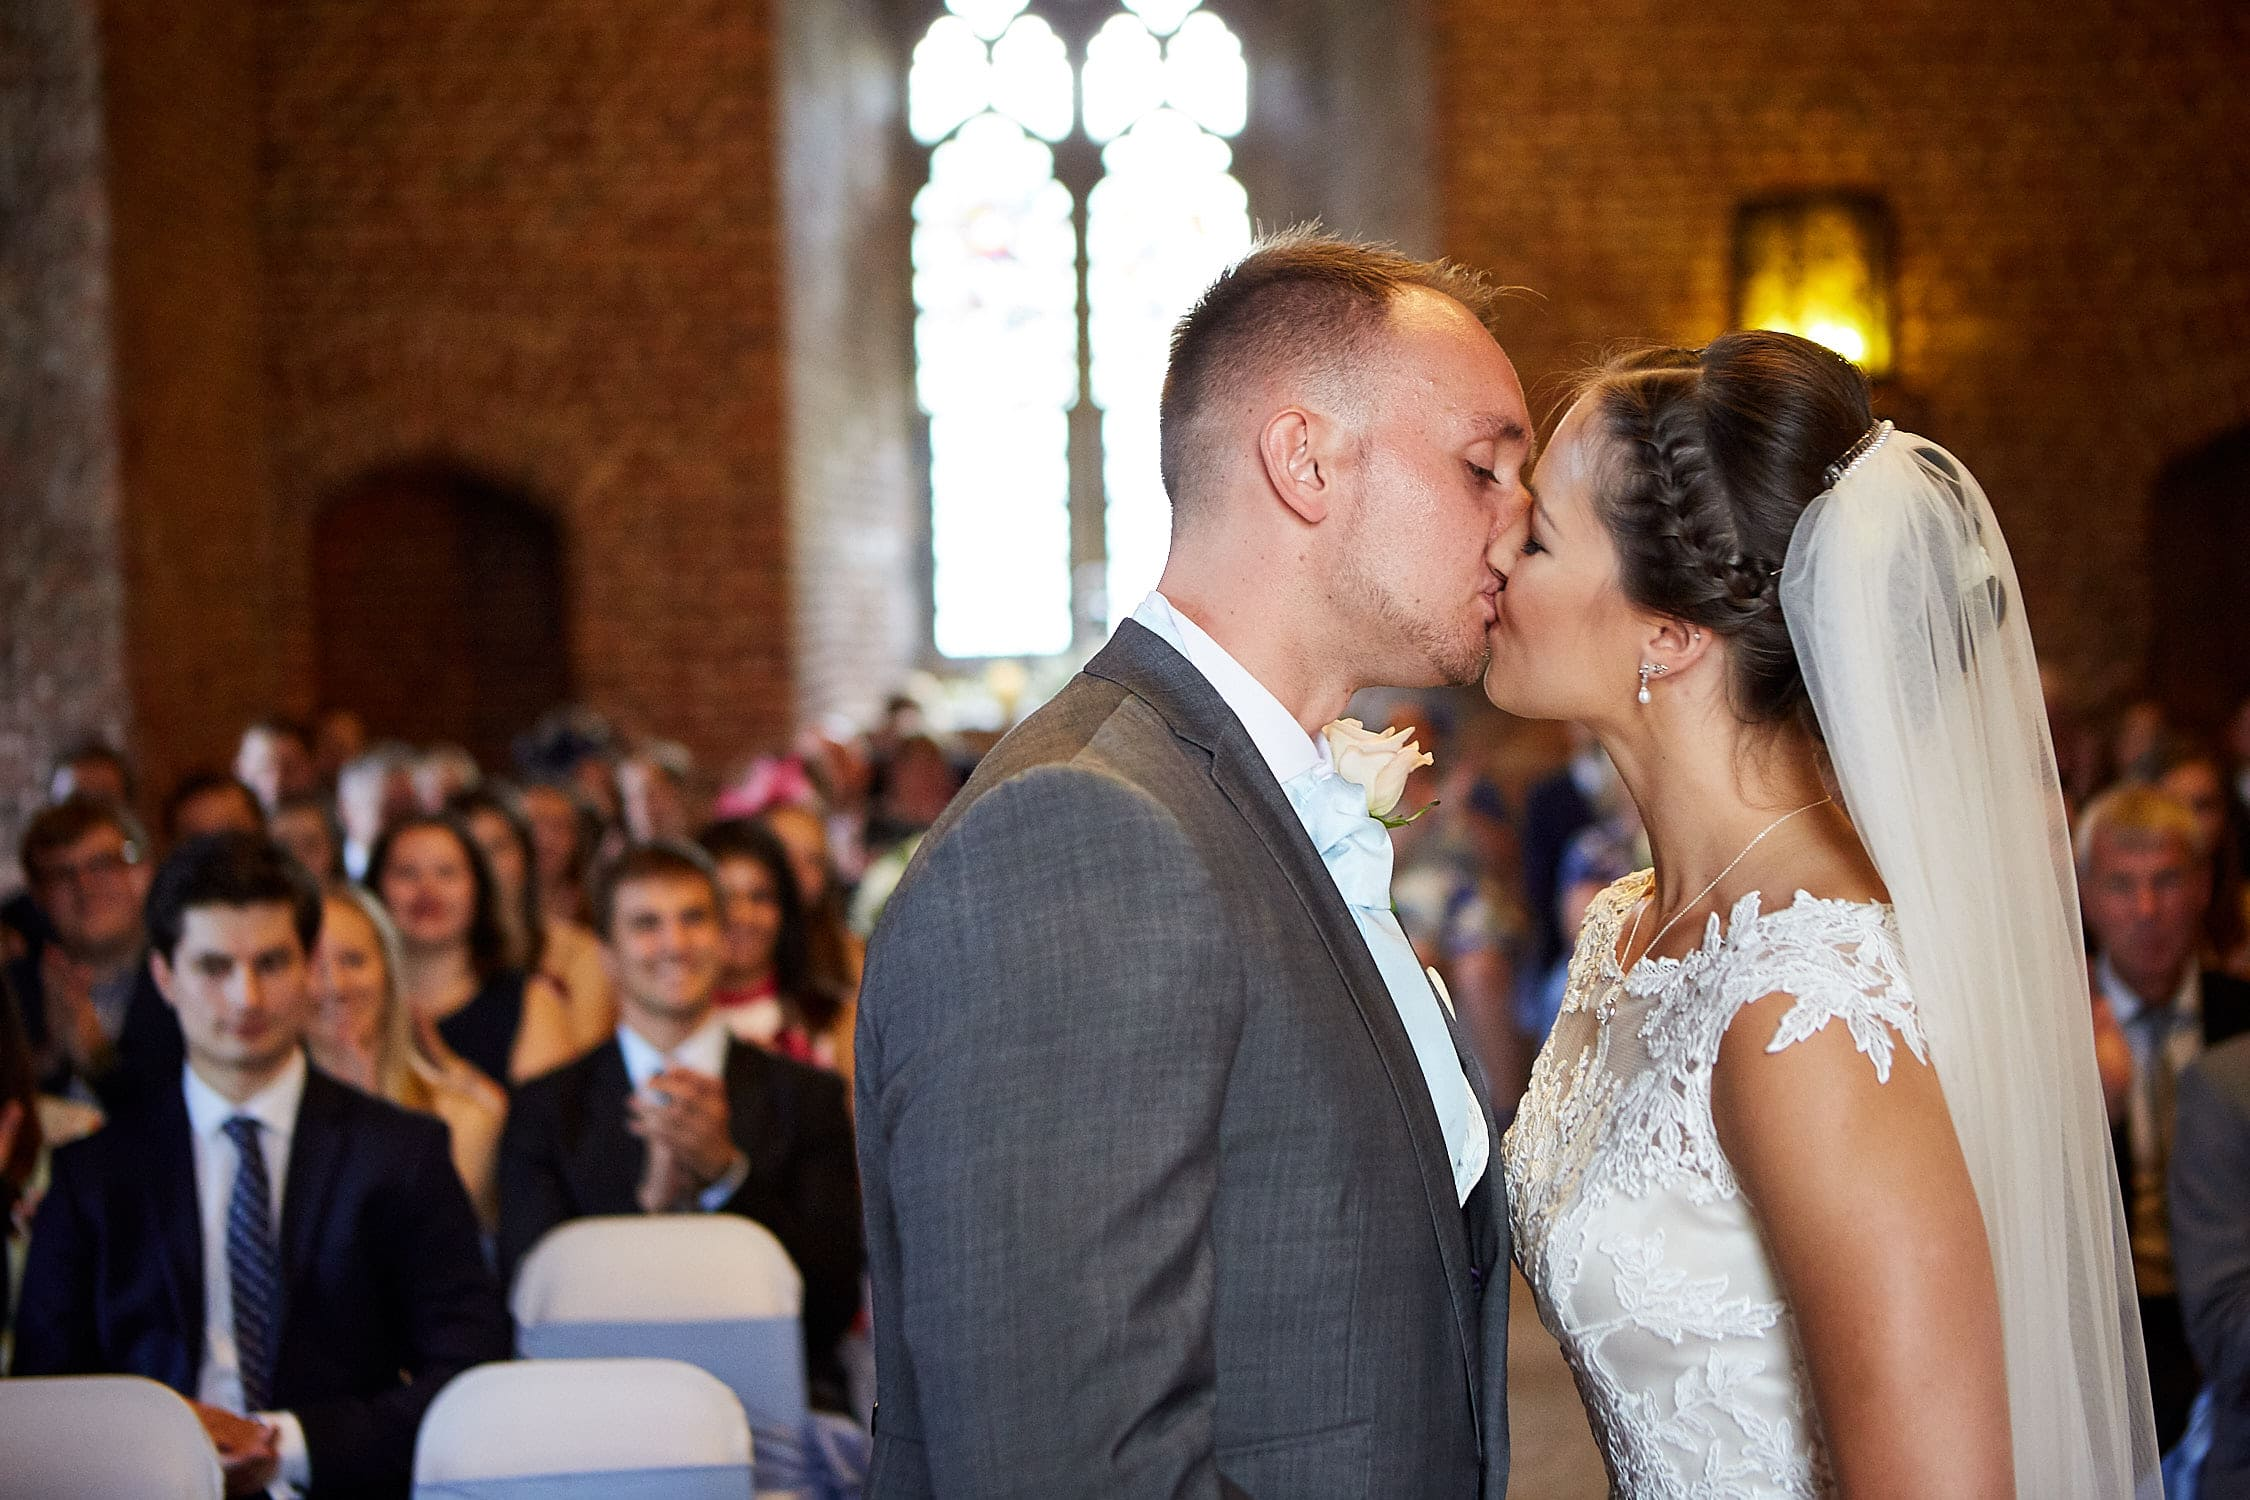 A groom kisses his new wife during their ceremony at Tattershall Castle National Trust Wedding venue.